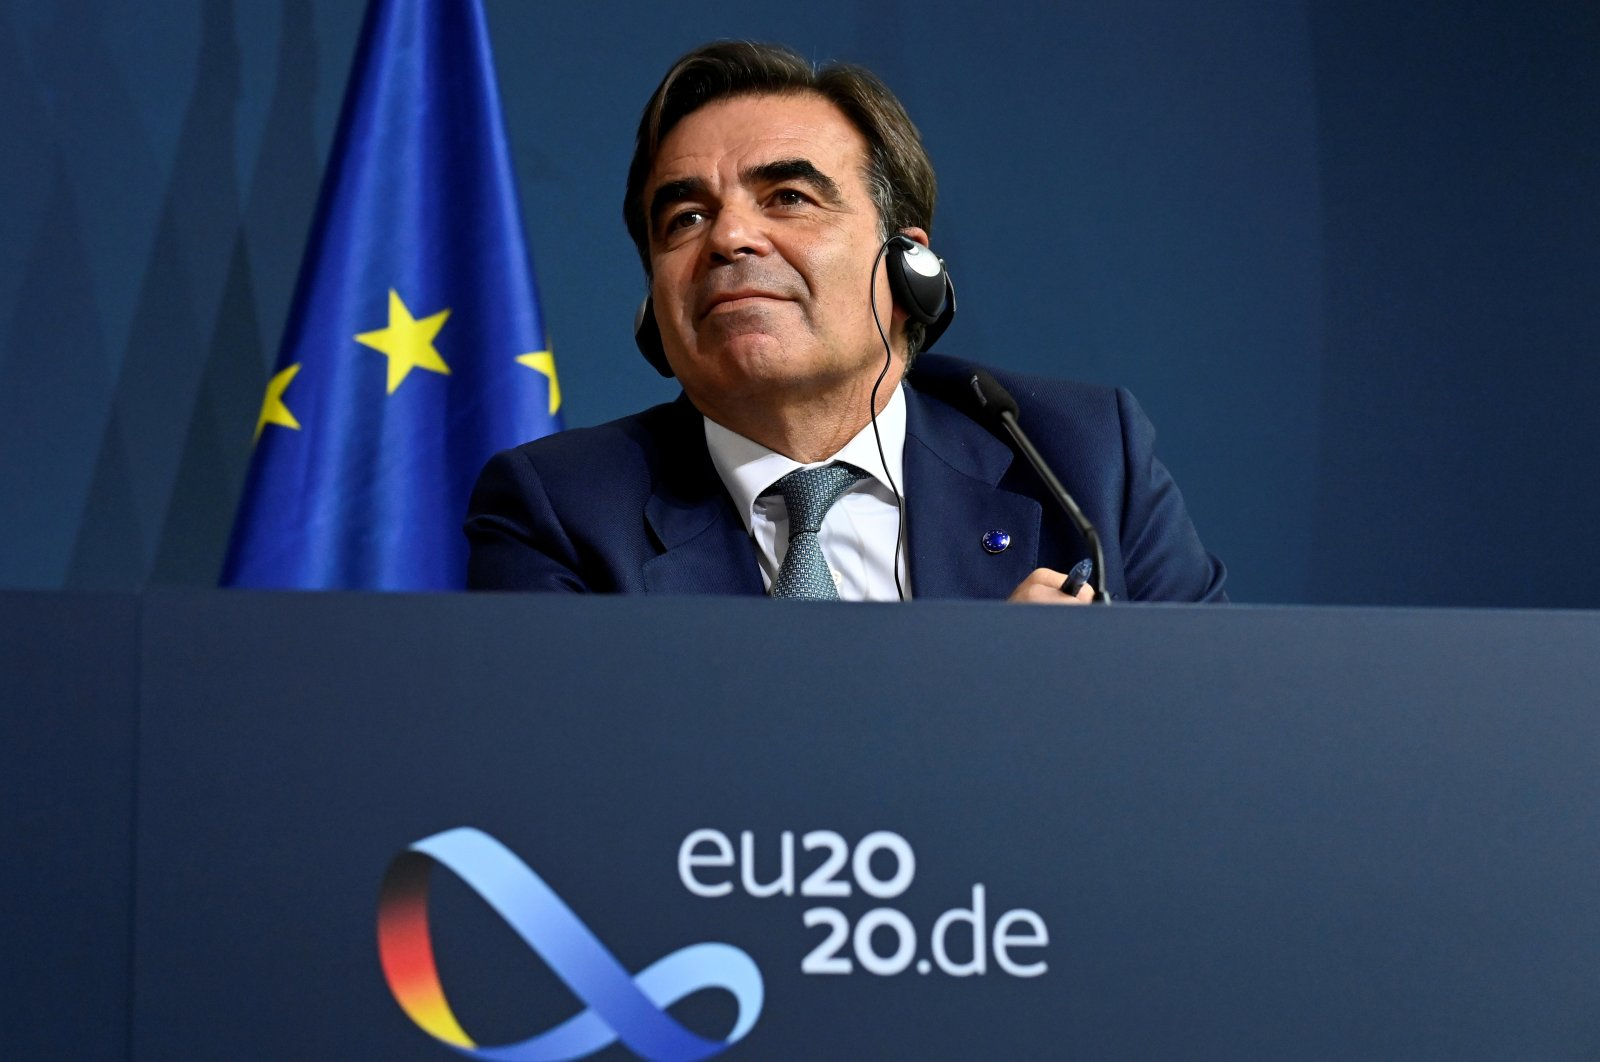 European Commissioner for Promoting the European Way of Life Margaritis Schinas speaks to the media at the Federal Ministry of the Interior, Berlin, Sept. 28, 2020. (REUTERS Photo)